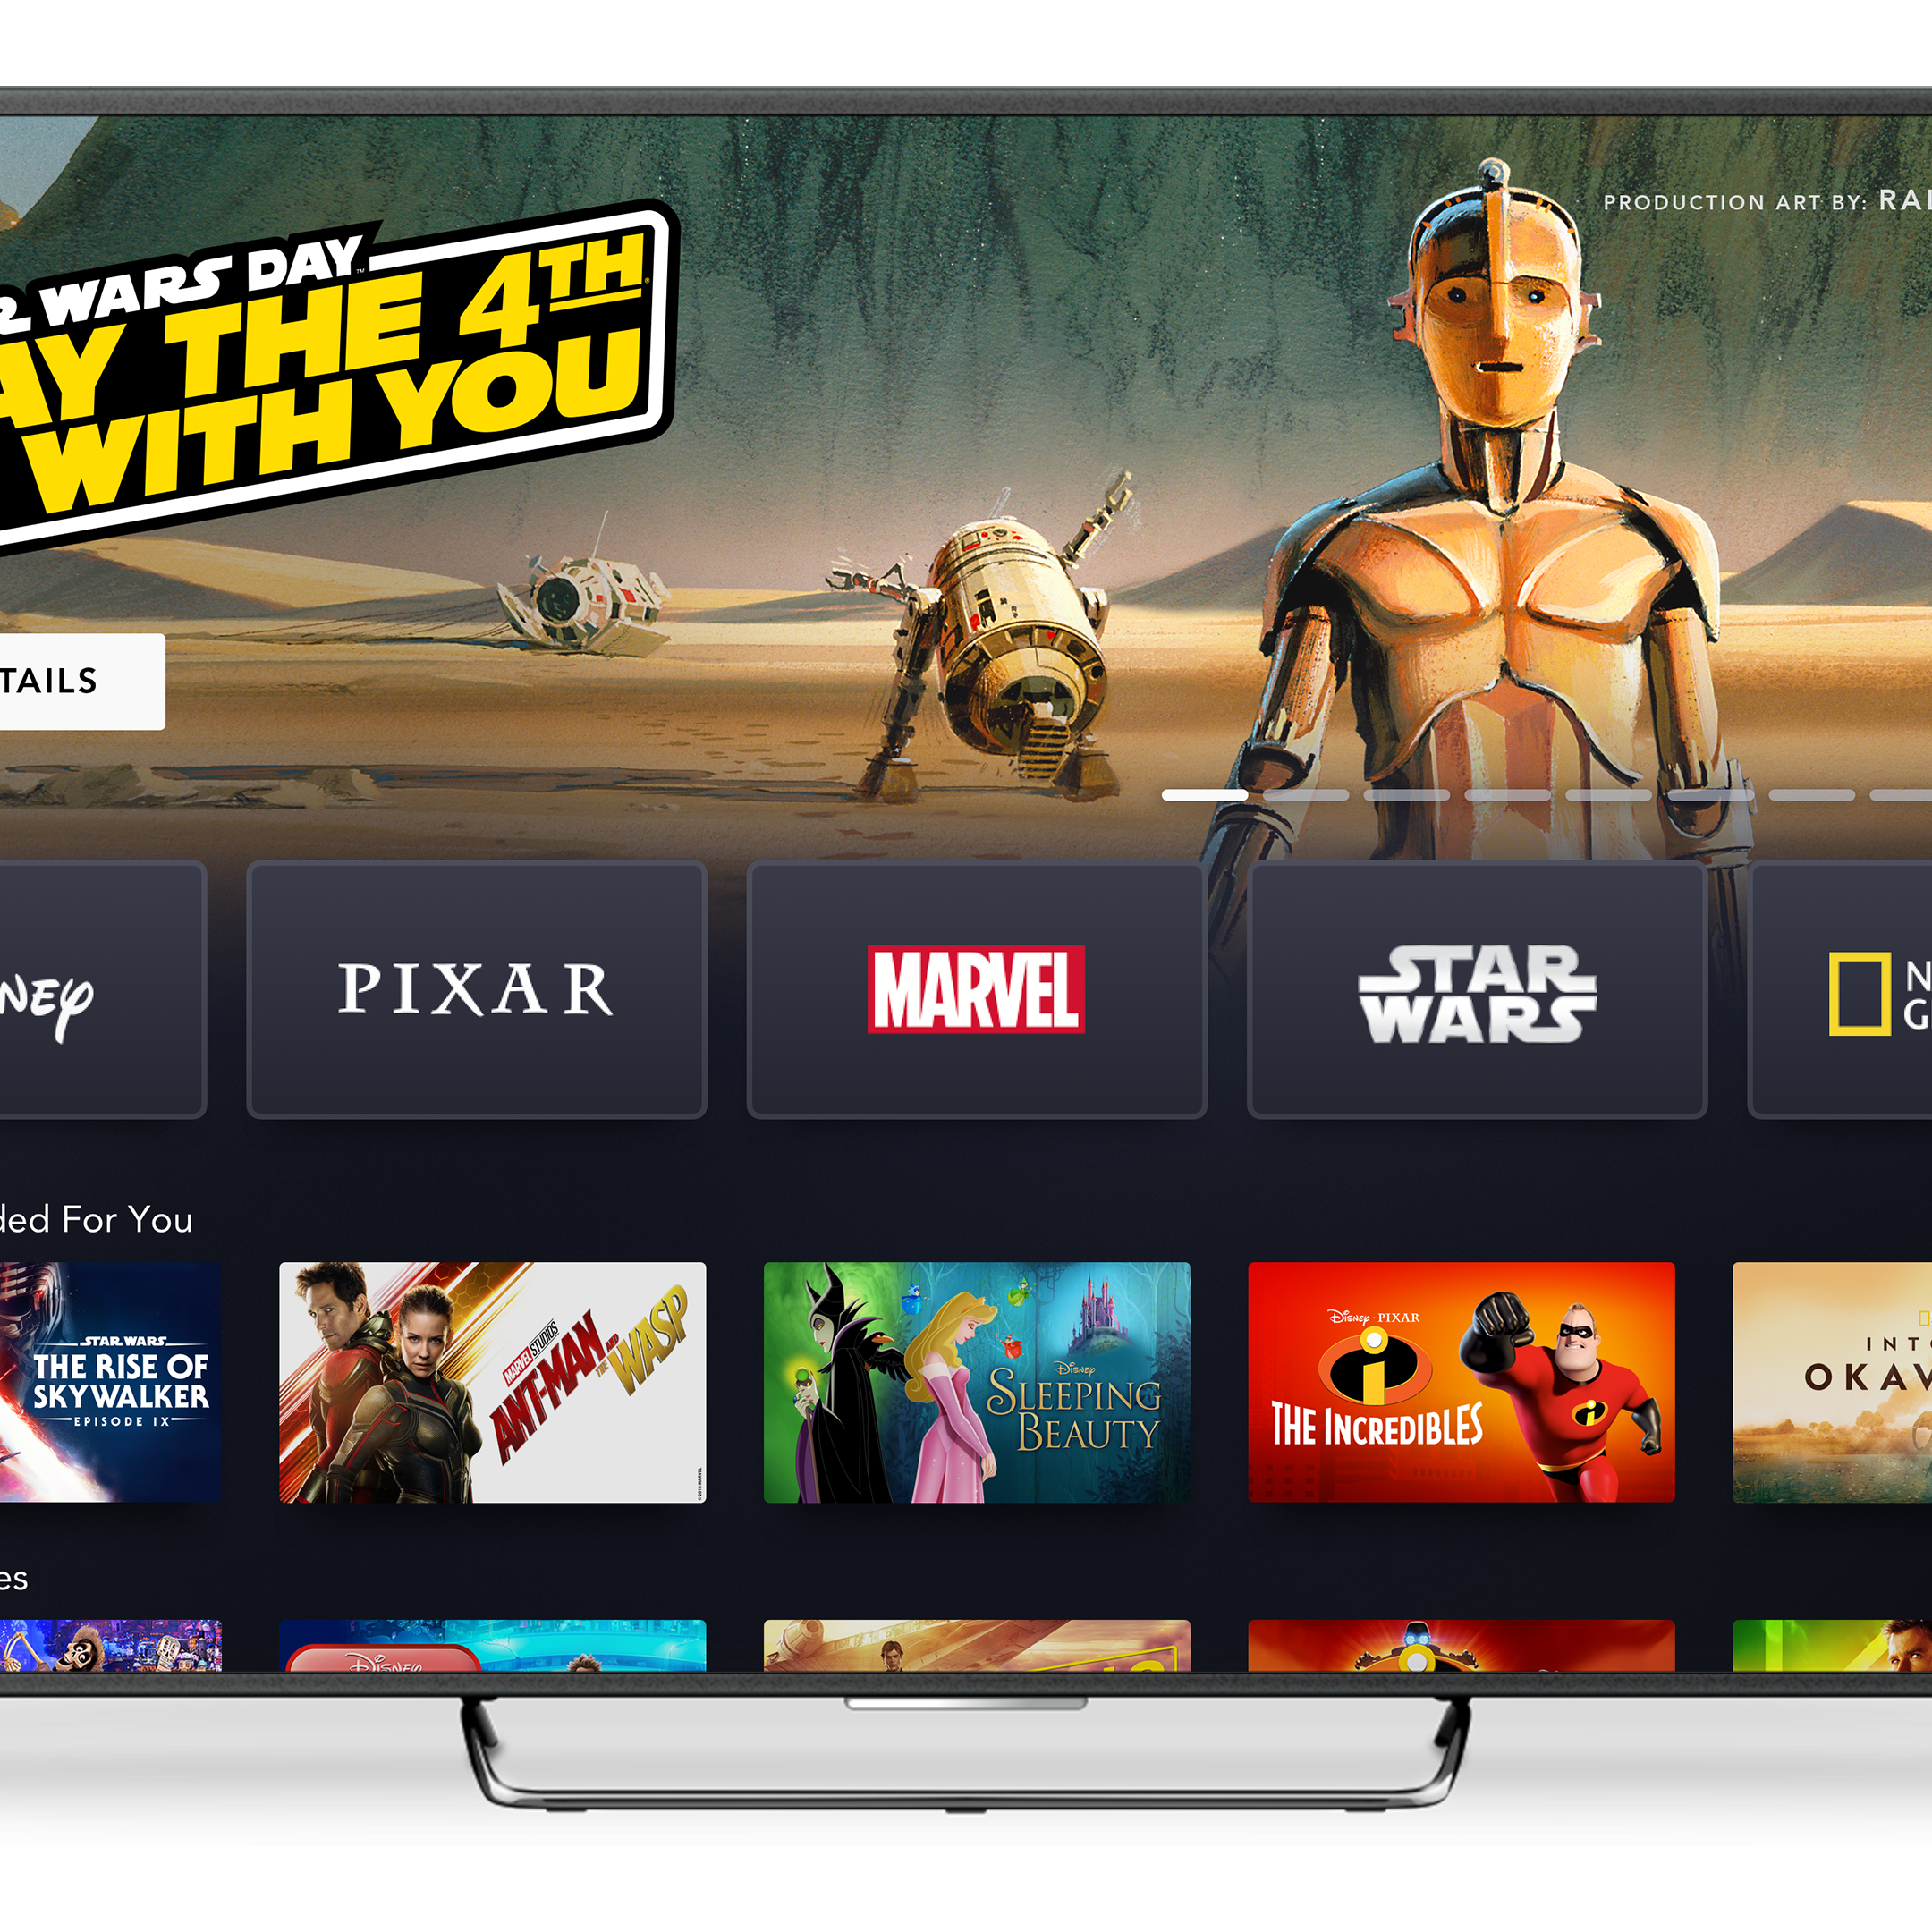 A Truly Epic May the 4th For Star Wars Fans on Disney+